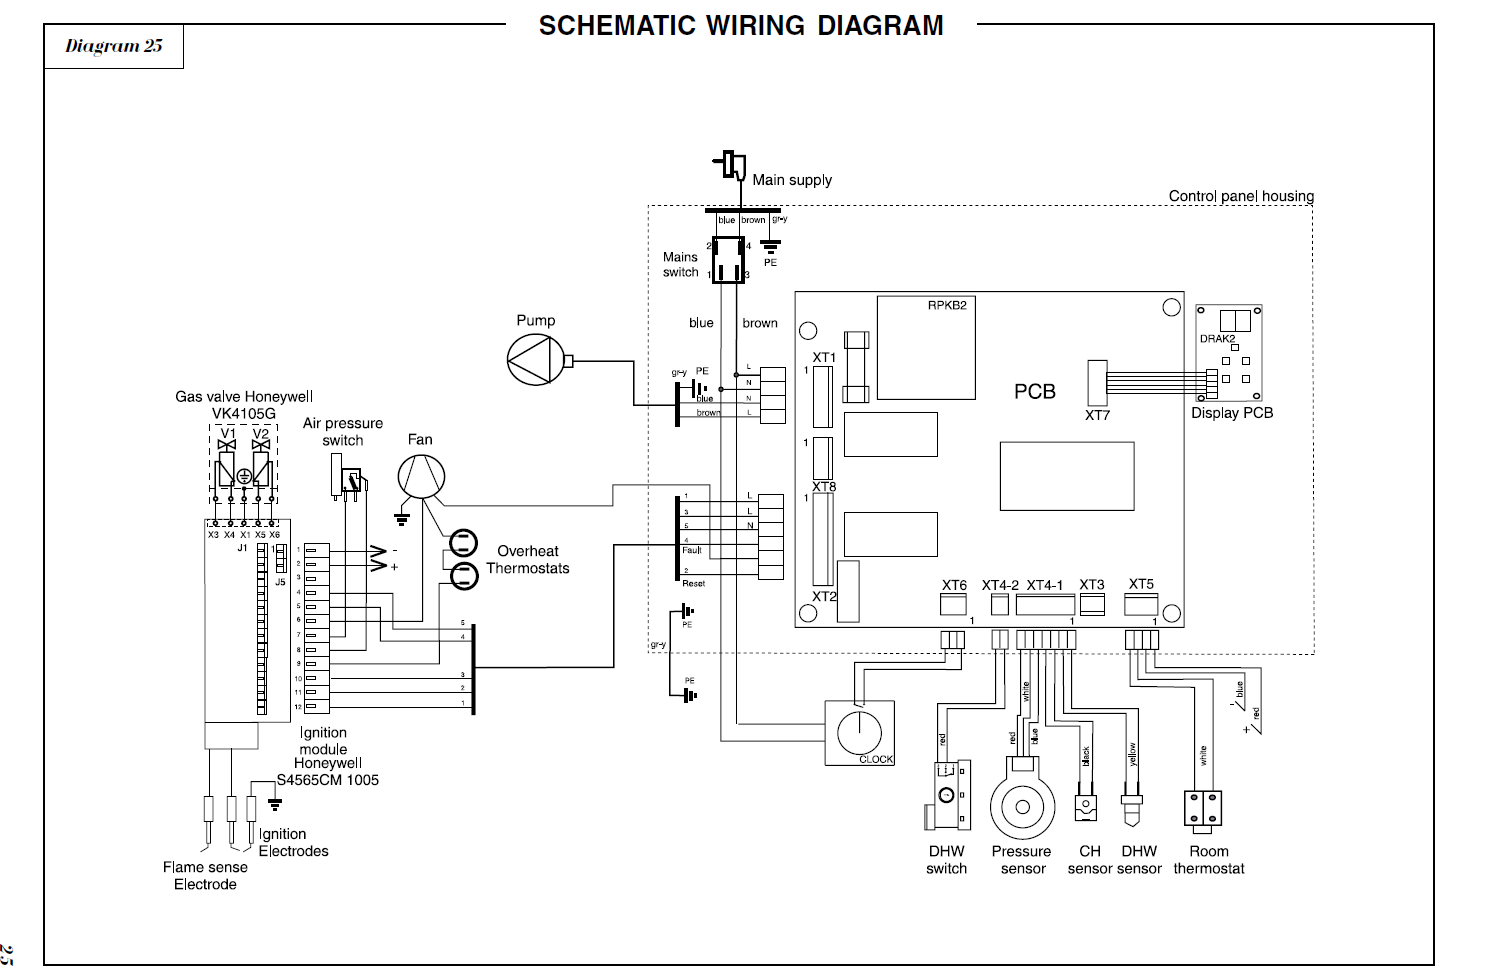 Ask Vaillant Domestic Boilers Honeywell Ignition Module Wiring Diagram Diagrams